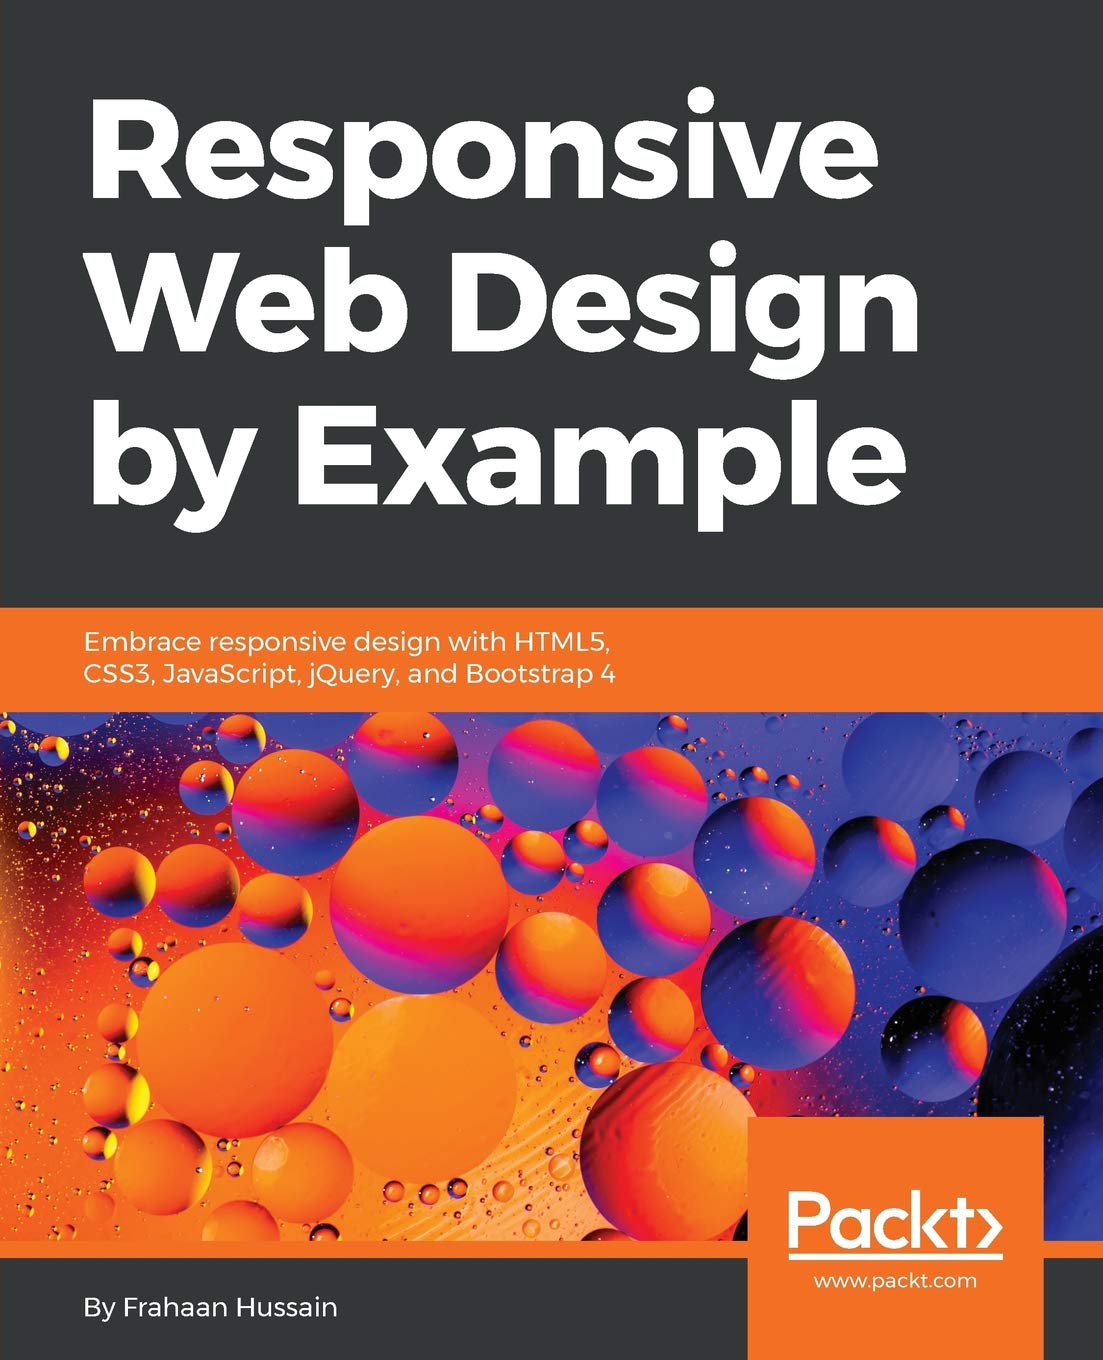 How To Use Bootstrap Grid System For Responsive Website Design Responsive Web Design By Example Embrace Responsive Design